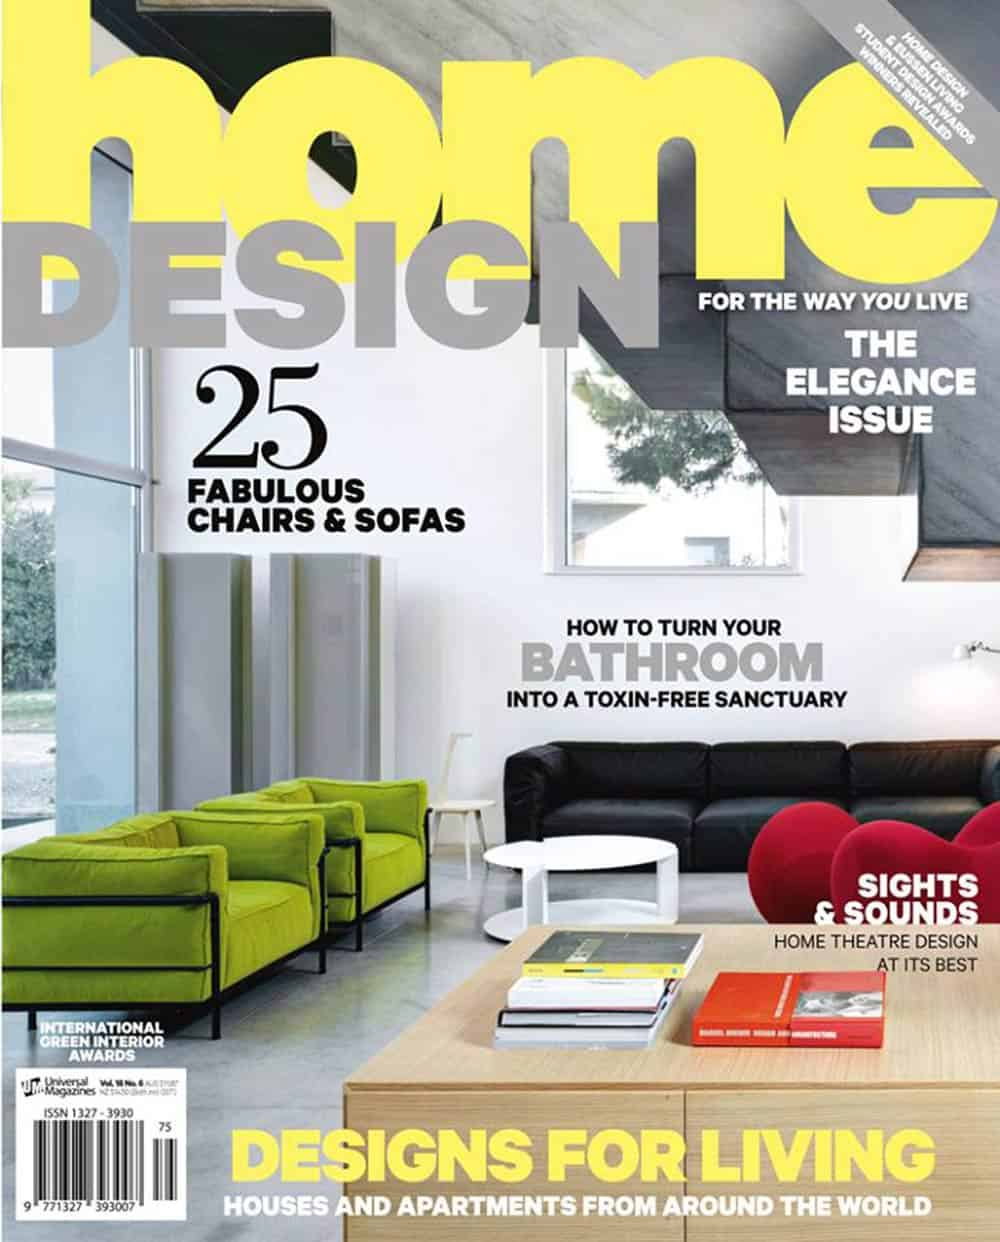 Alexander Pollock in Home Design Magazine - Volume 18 Issue 6 - 2015